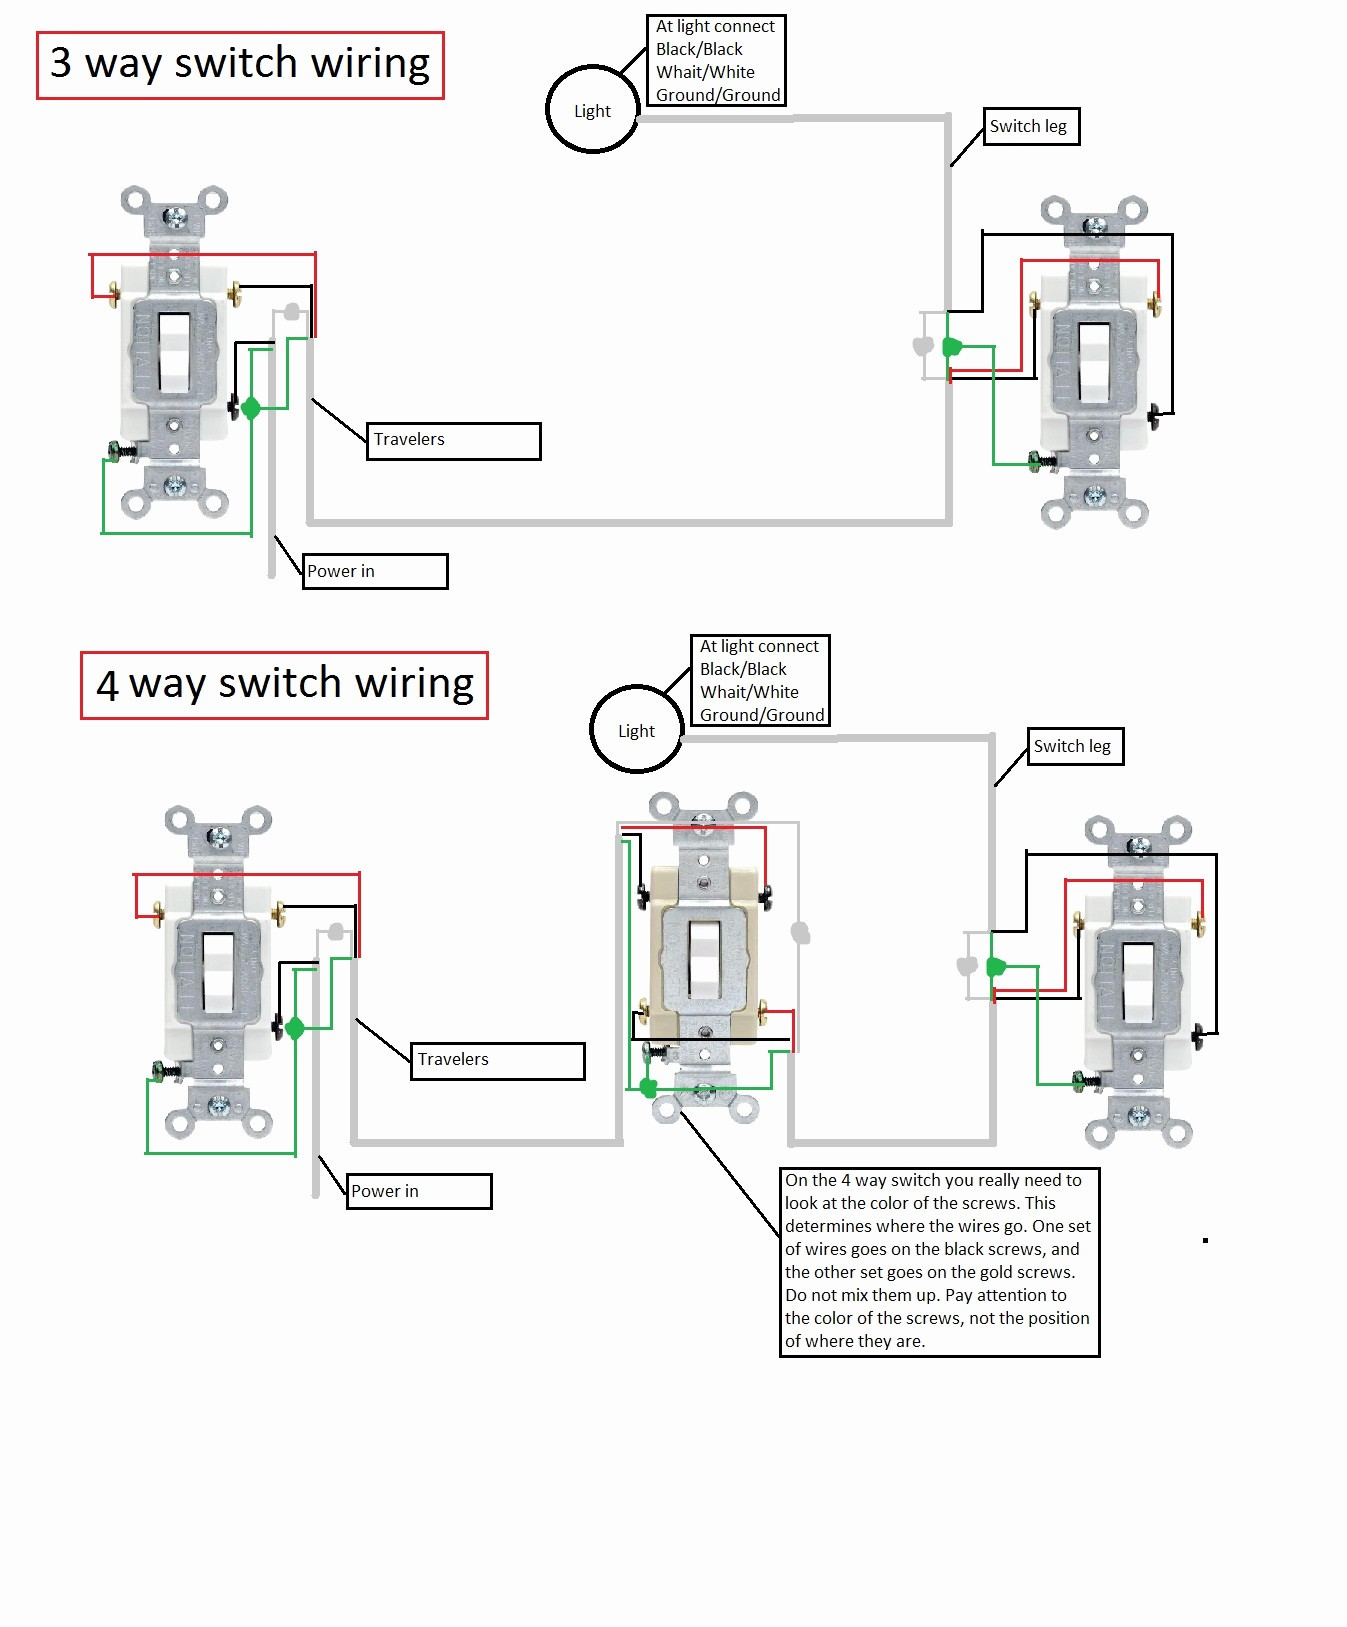 4 Way Light Switch Wiring Diagram Image Ceiling Fan Installation Red Wire Best 3 Lights